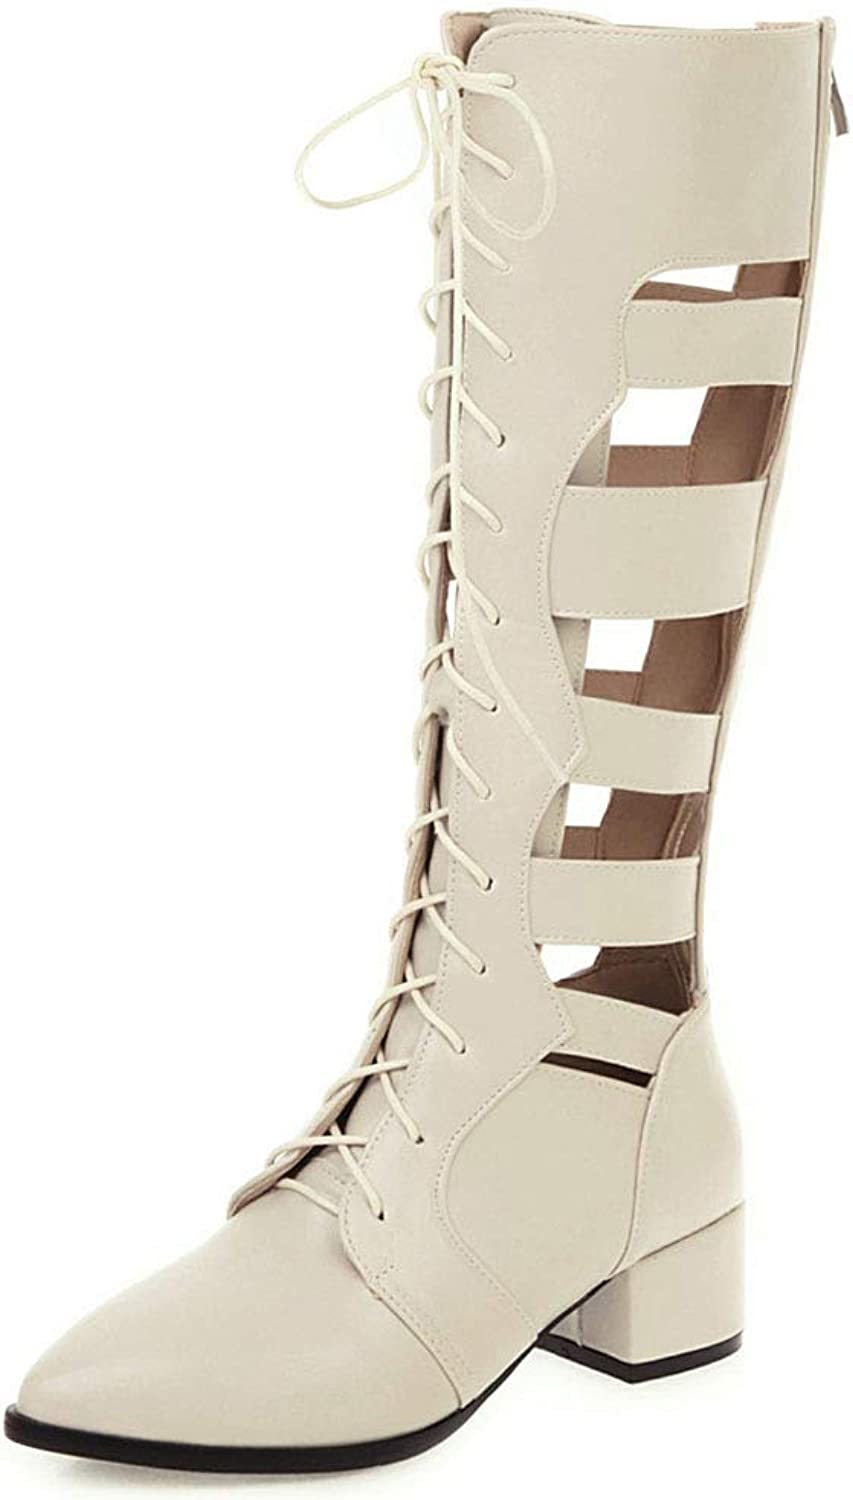 SaraIris Women's Pointed Toe Chunky Heel Sandal Boots Summer Sexy Lace Strappy Mid Calf Boots